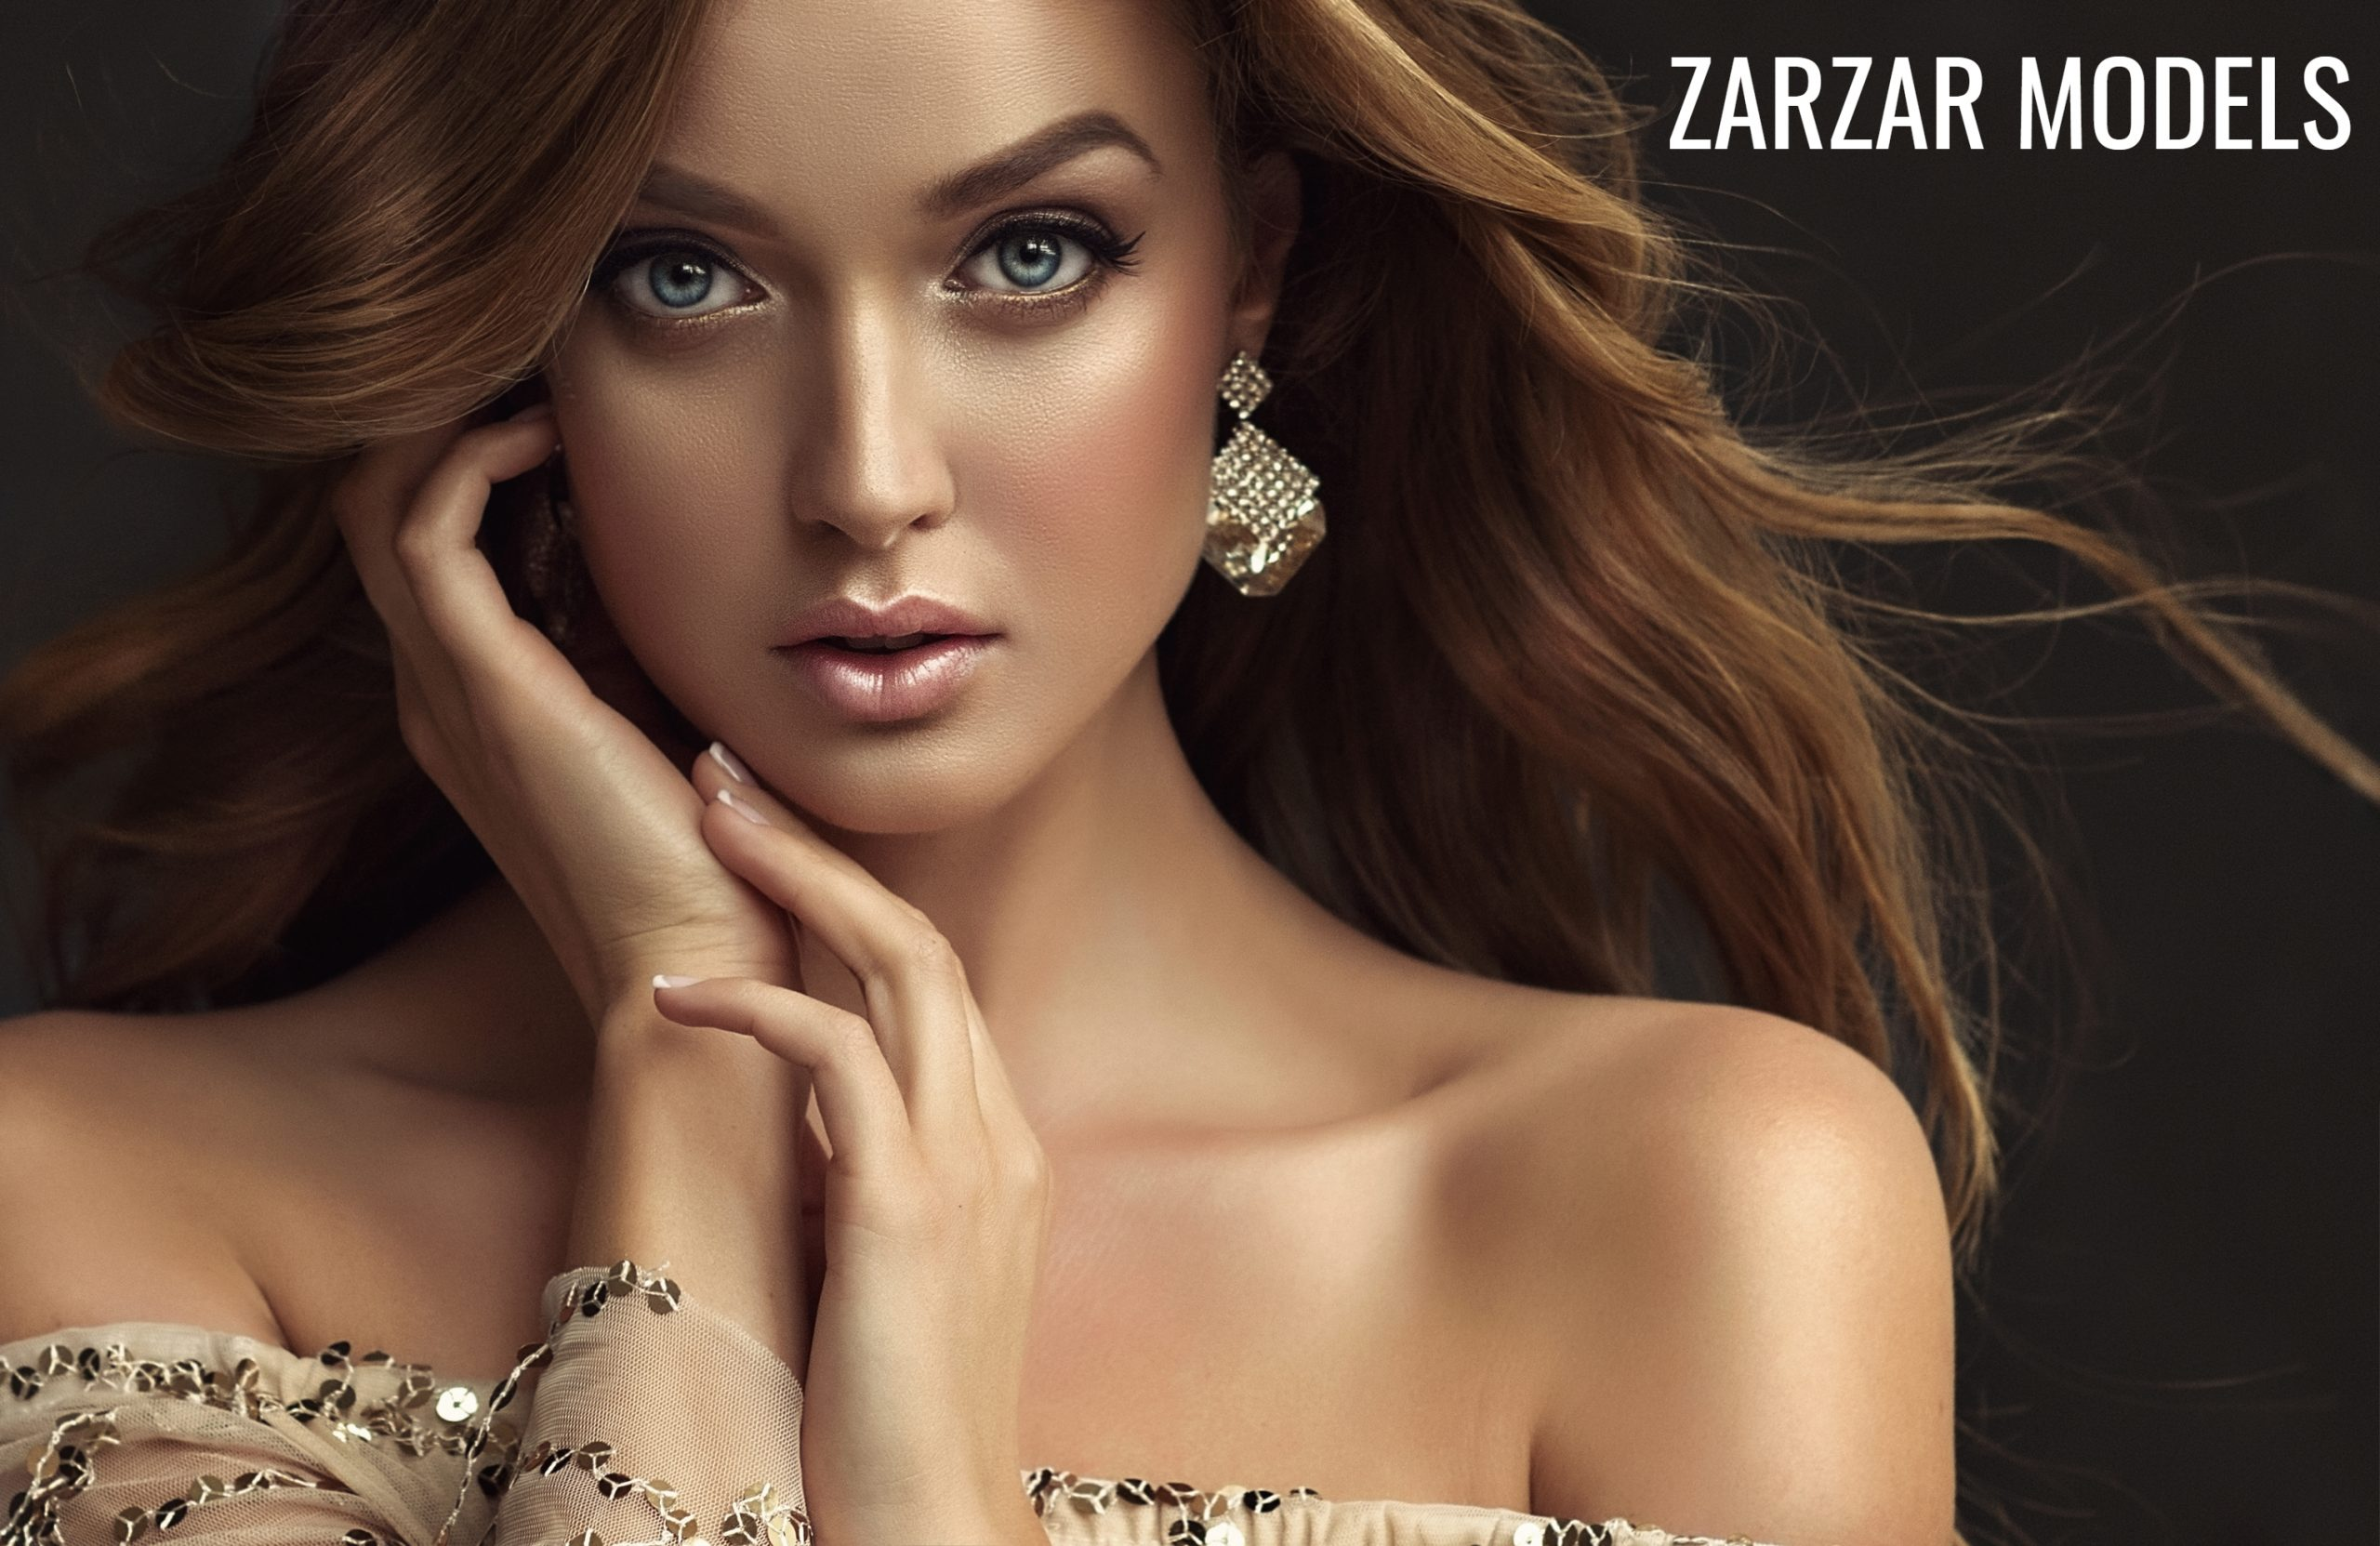 ZARZAR FASHION